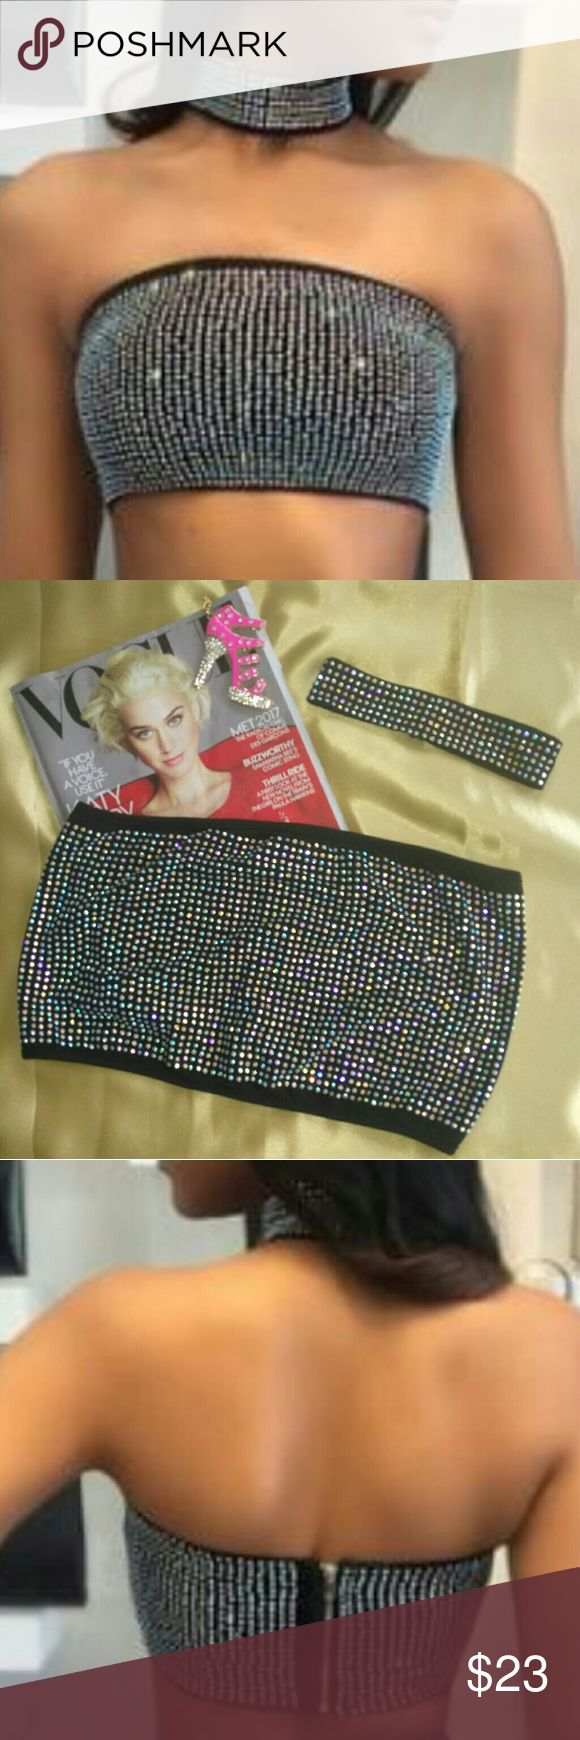 Rhinestone Embellished Bandeau Top & Choker Sparkly, eye catching crop top with matching choker!  Black, Rhinestone Embellished. Zip Back. Size Small. Choker-double button closure. Tops Crop Tops